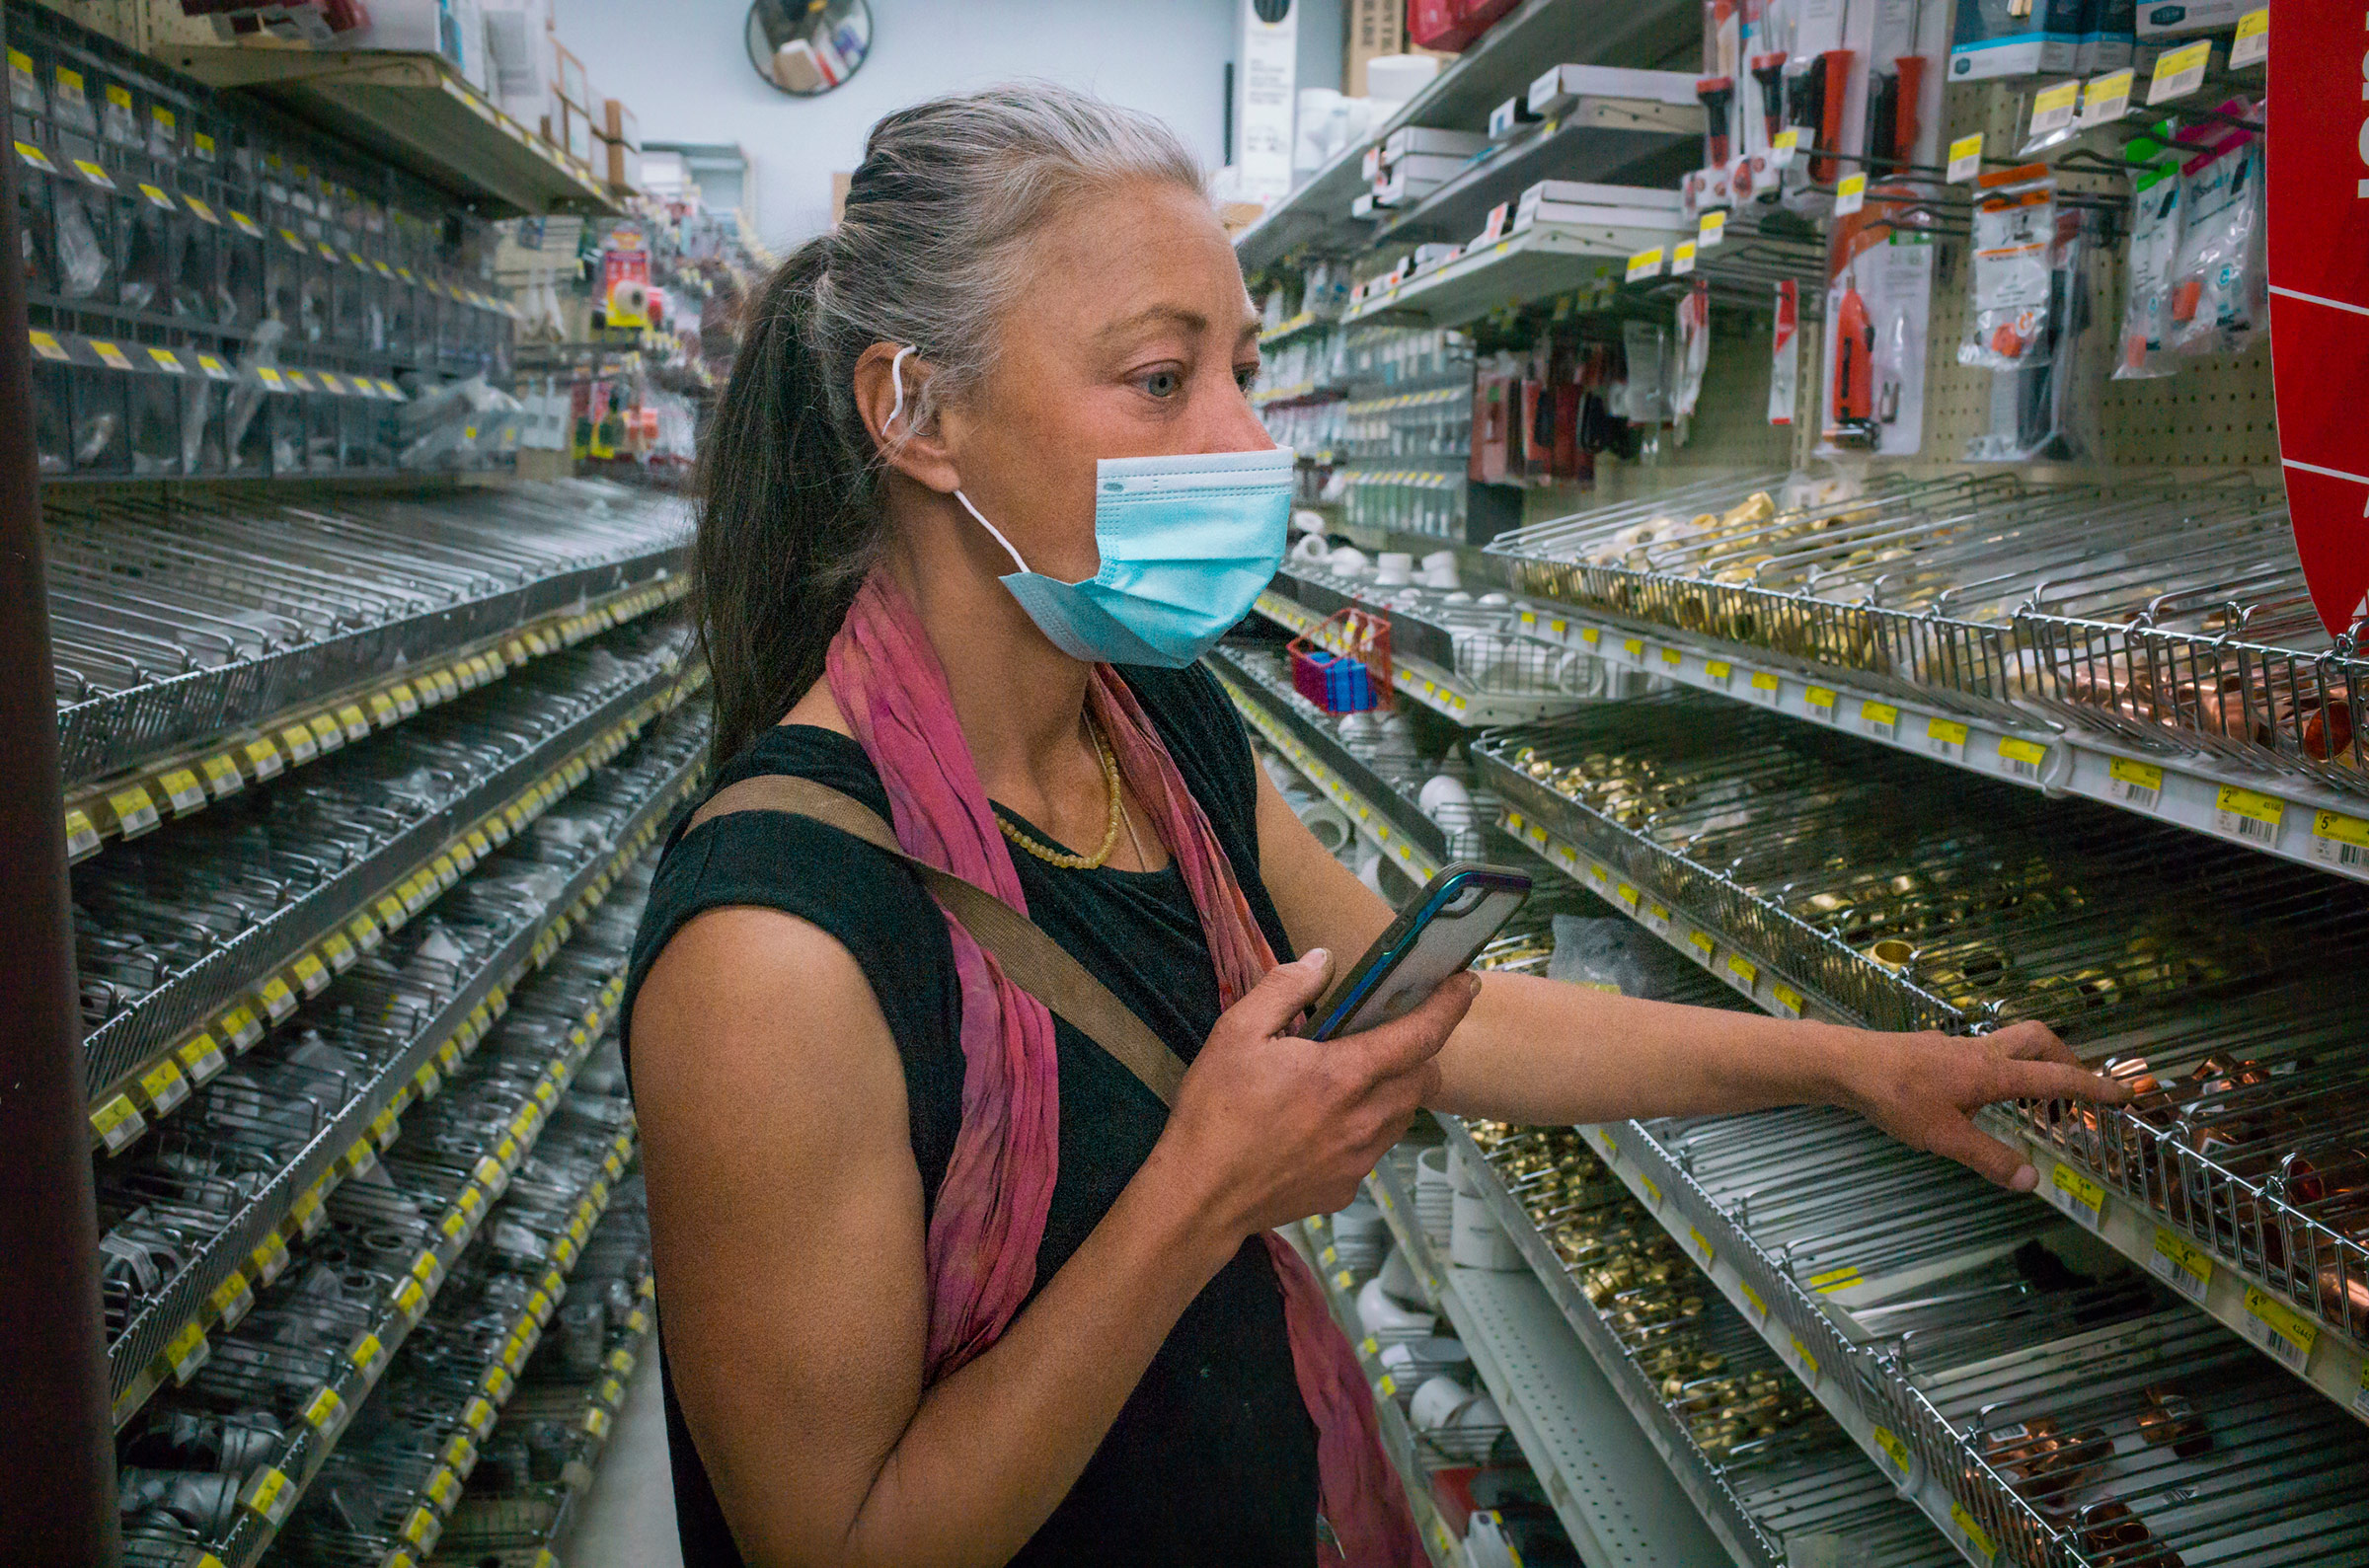 Paula looks for parts for a heater in a local hardware store on March 3.